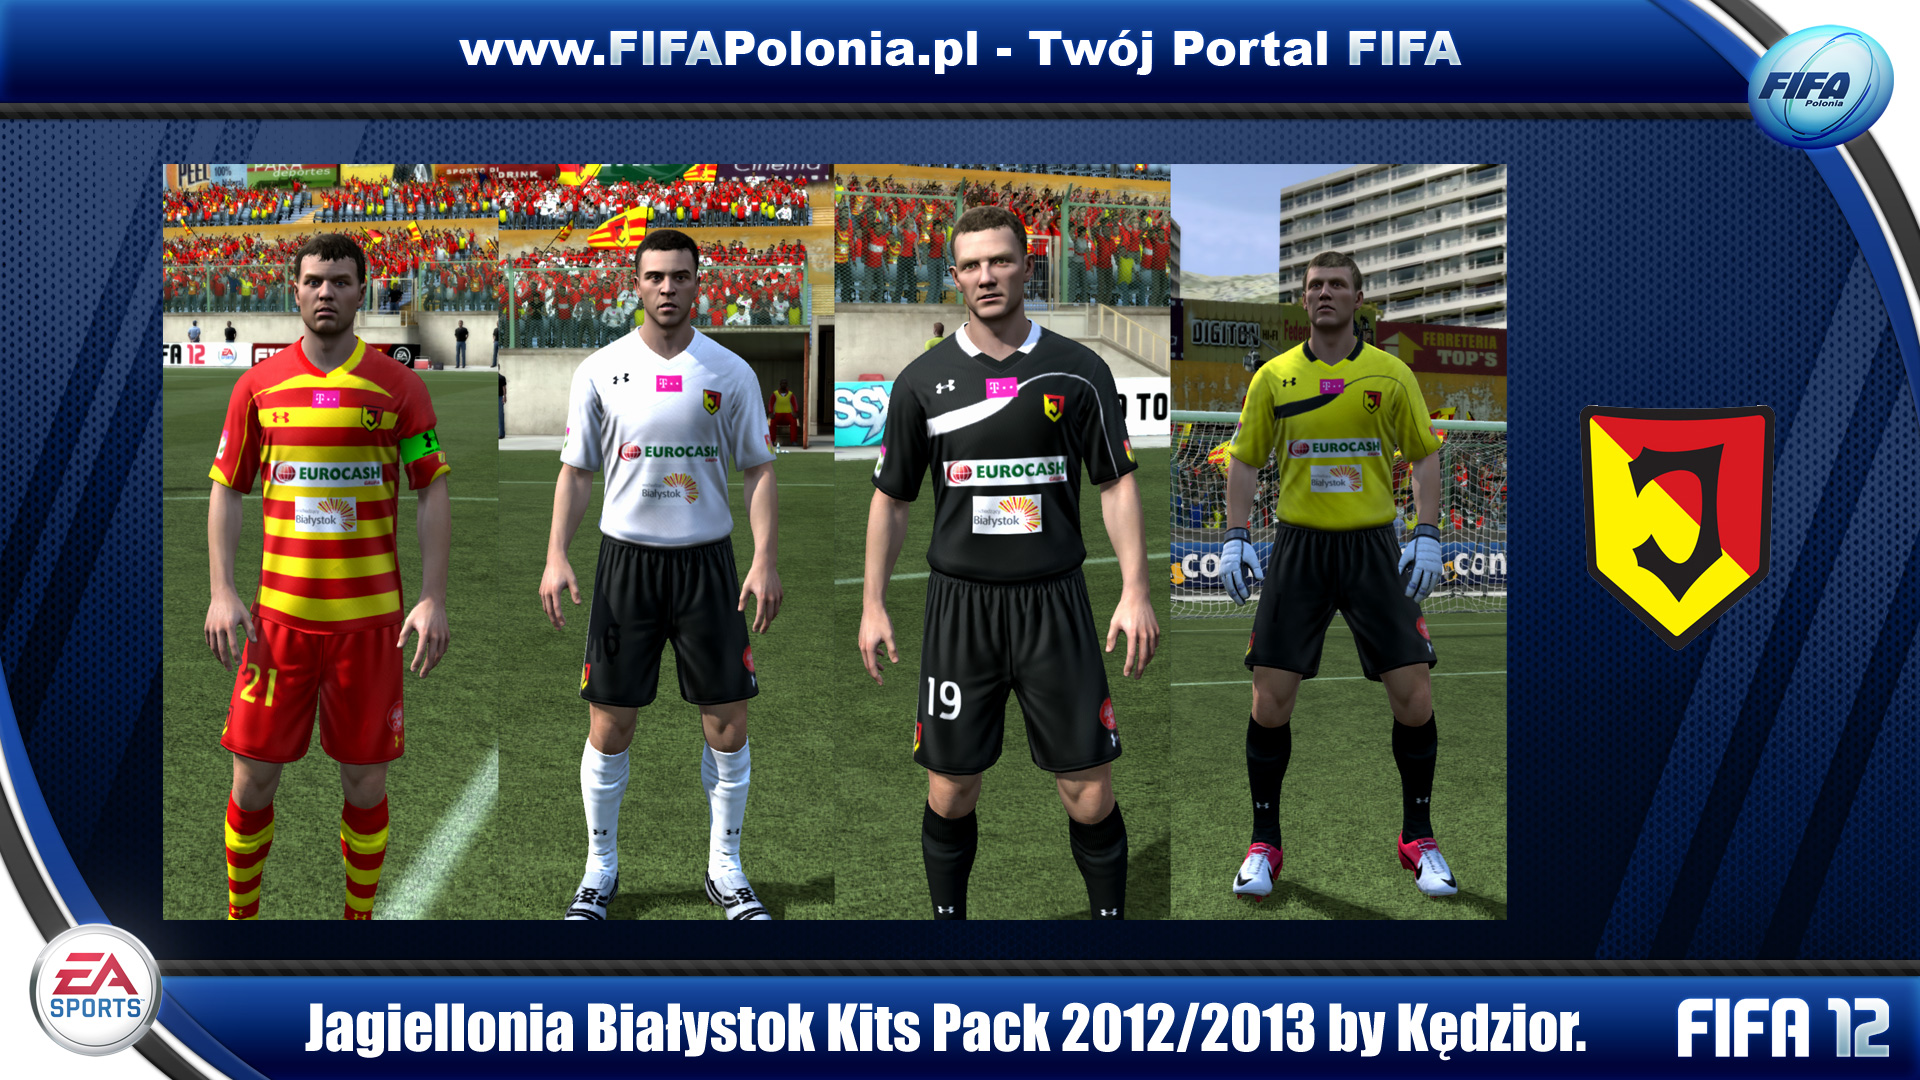 FIFA 14 Summer Transfers Patch 23082014 - Nerdoholic